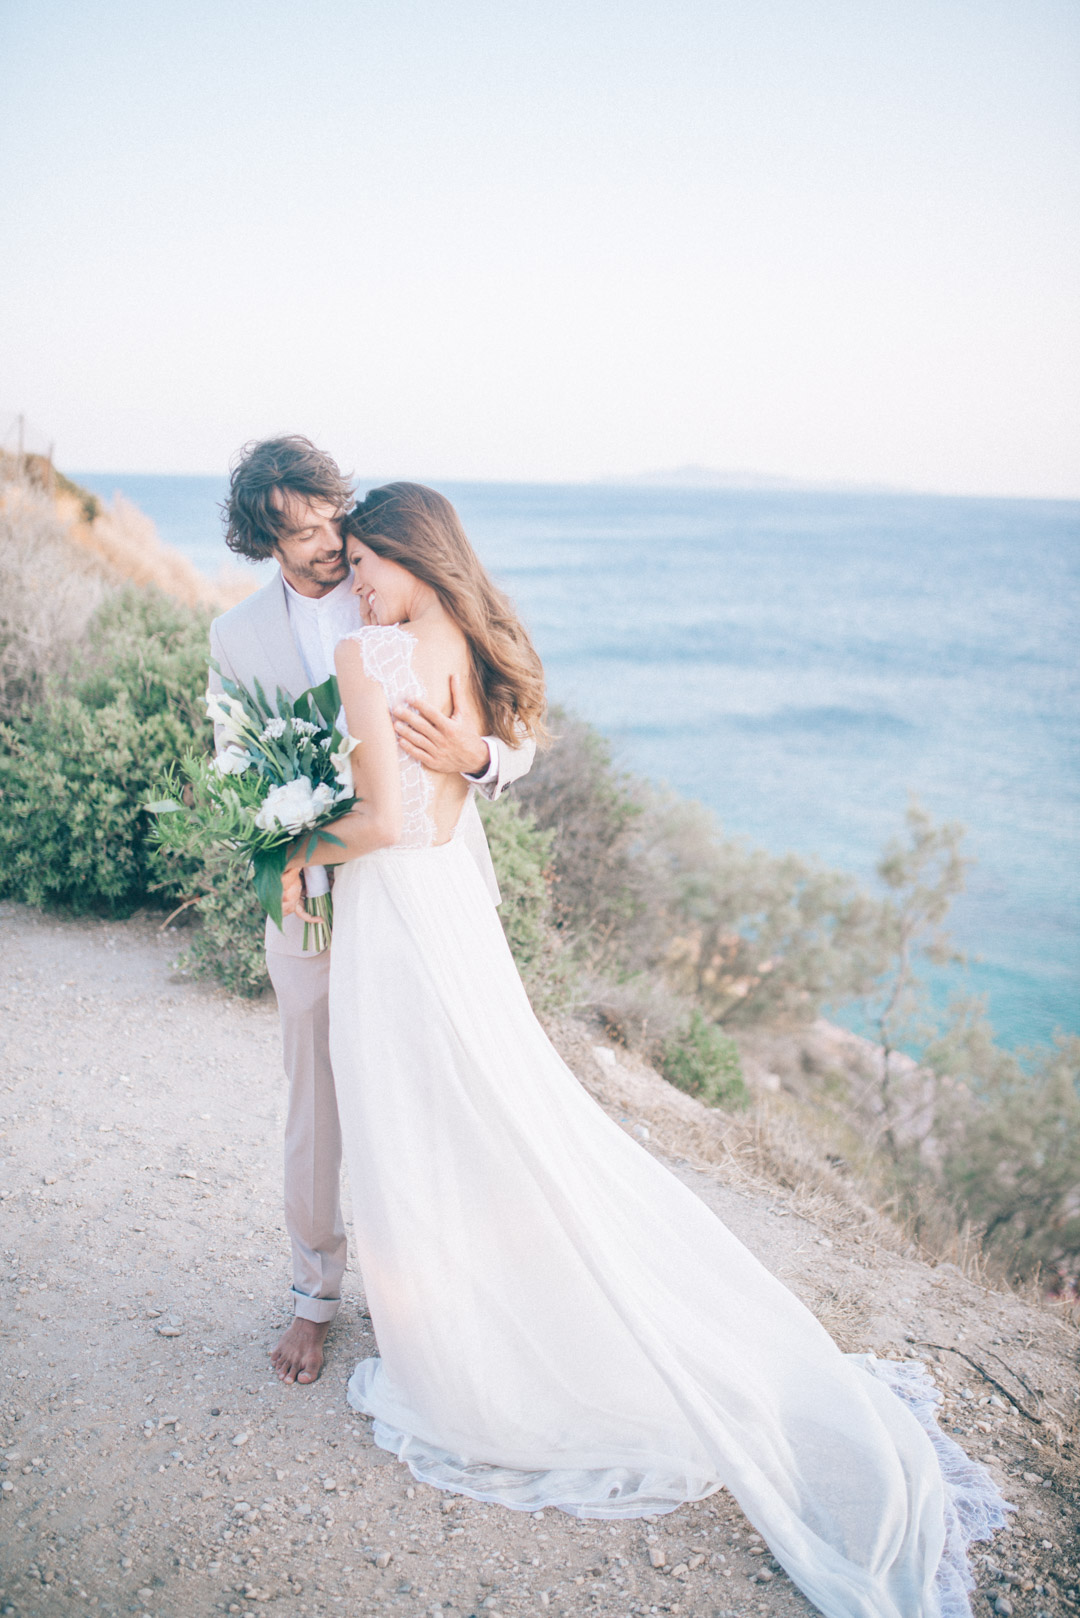 ohemian-Cliffside-Elopement-in-Greece-with-a-tropical-touch